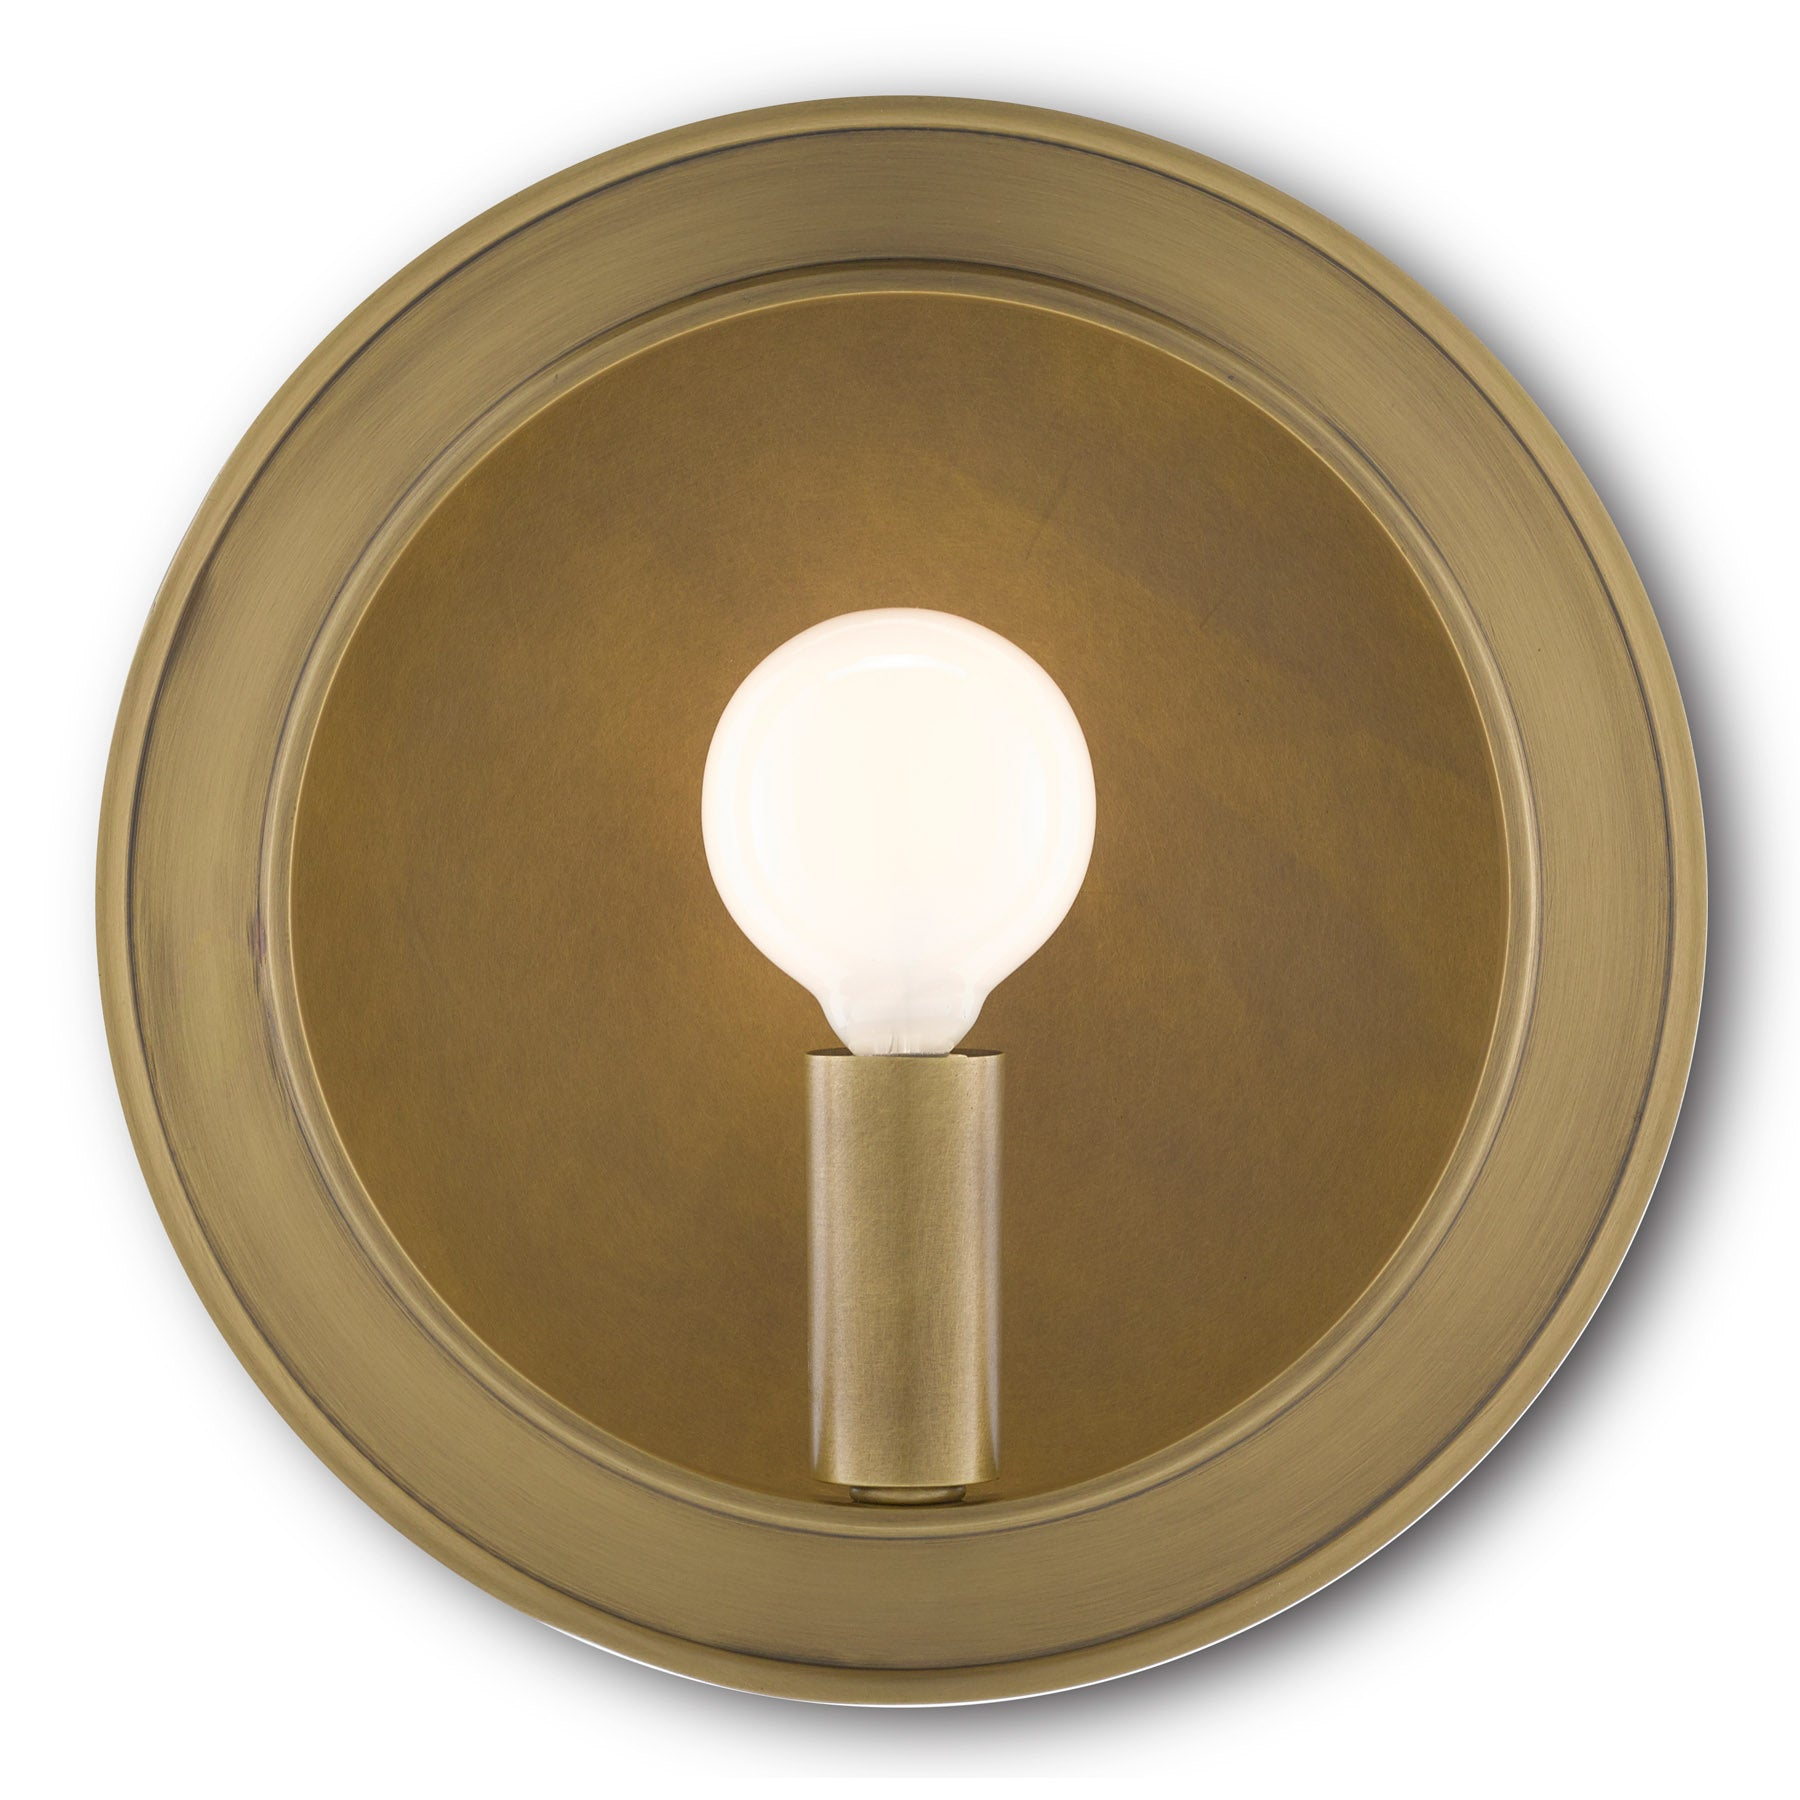 Chaplet Brass Wall Sconce